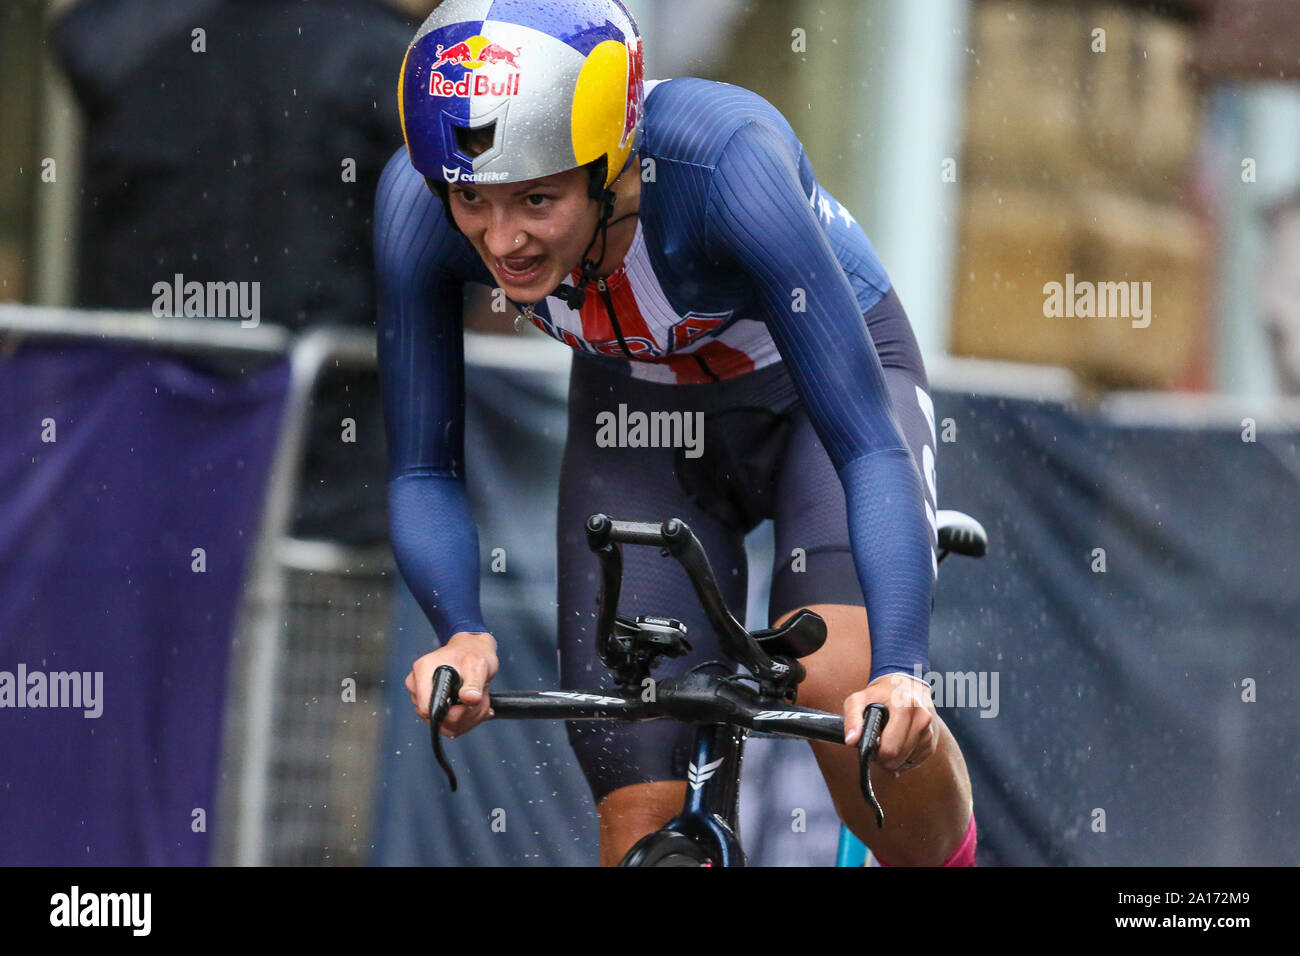 Harrogate, UK. 24th September 2019. Chloe Dygert of the USA crosses the line to take gold 2019 UCI Road World Championships Womens Elite Individual Time Trial. September 24, 2019 Credit Dan-Cooke/Alamy Live News Stock Photo